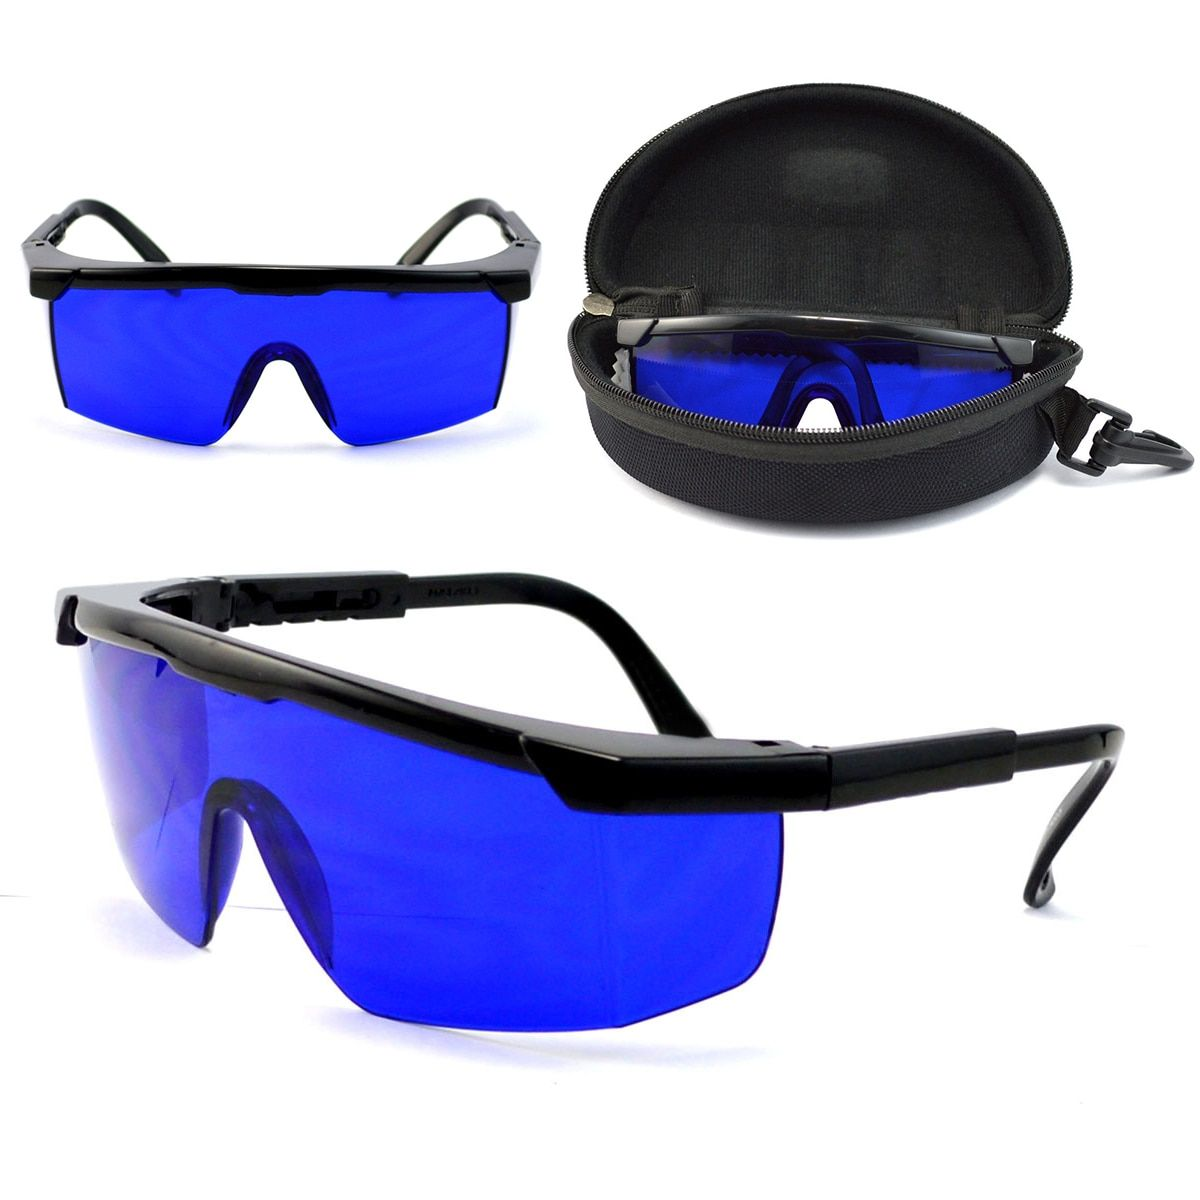 Mayitr Professional <font><b>Golf</b></font> Ball Finder Glasses Eye Protection <font><b>Golf</b></font> Accessories Blue Lenses Sport Glasses With Box